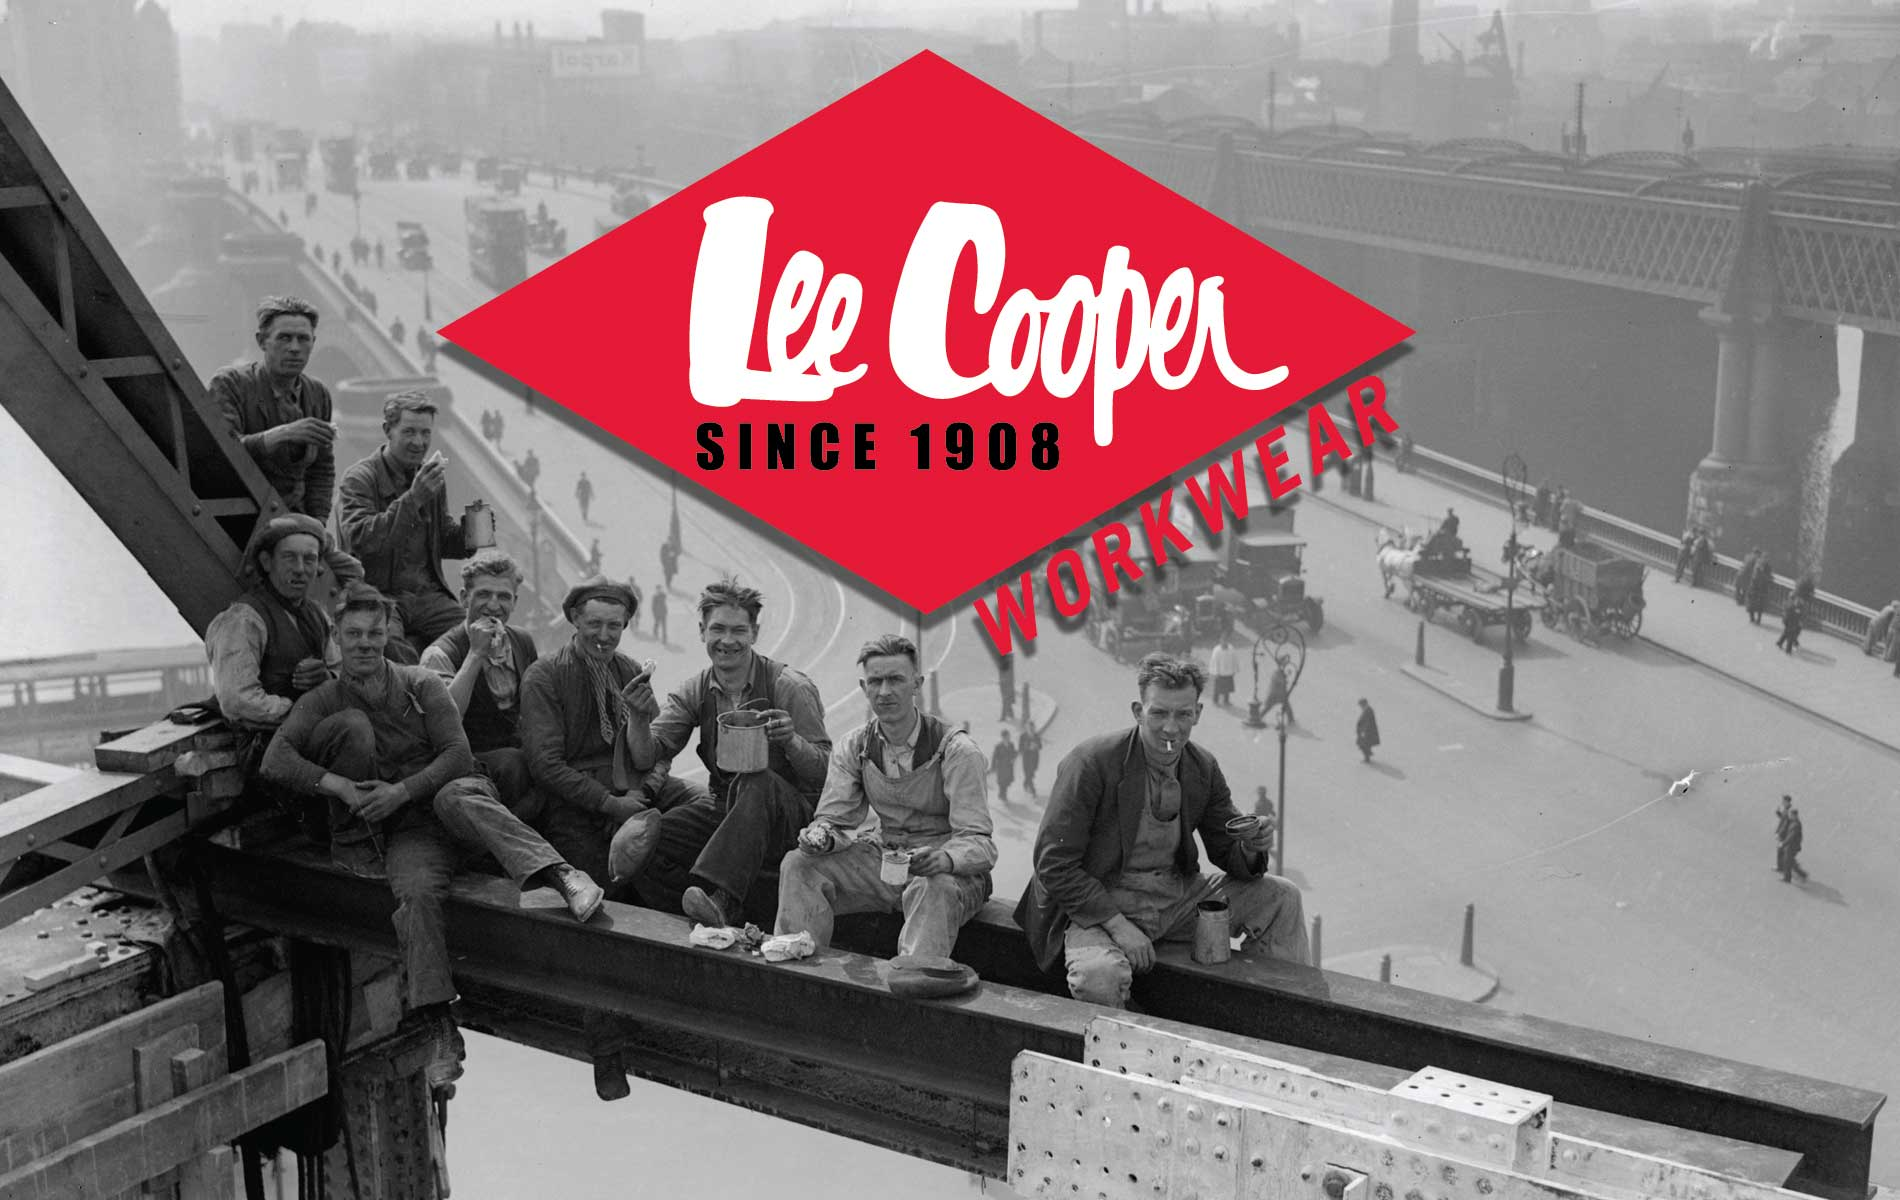 Lee Cooper – Workwear